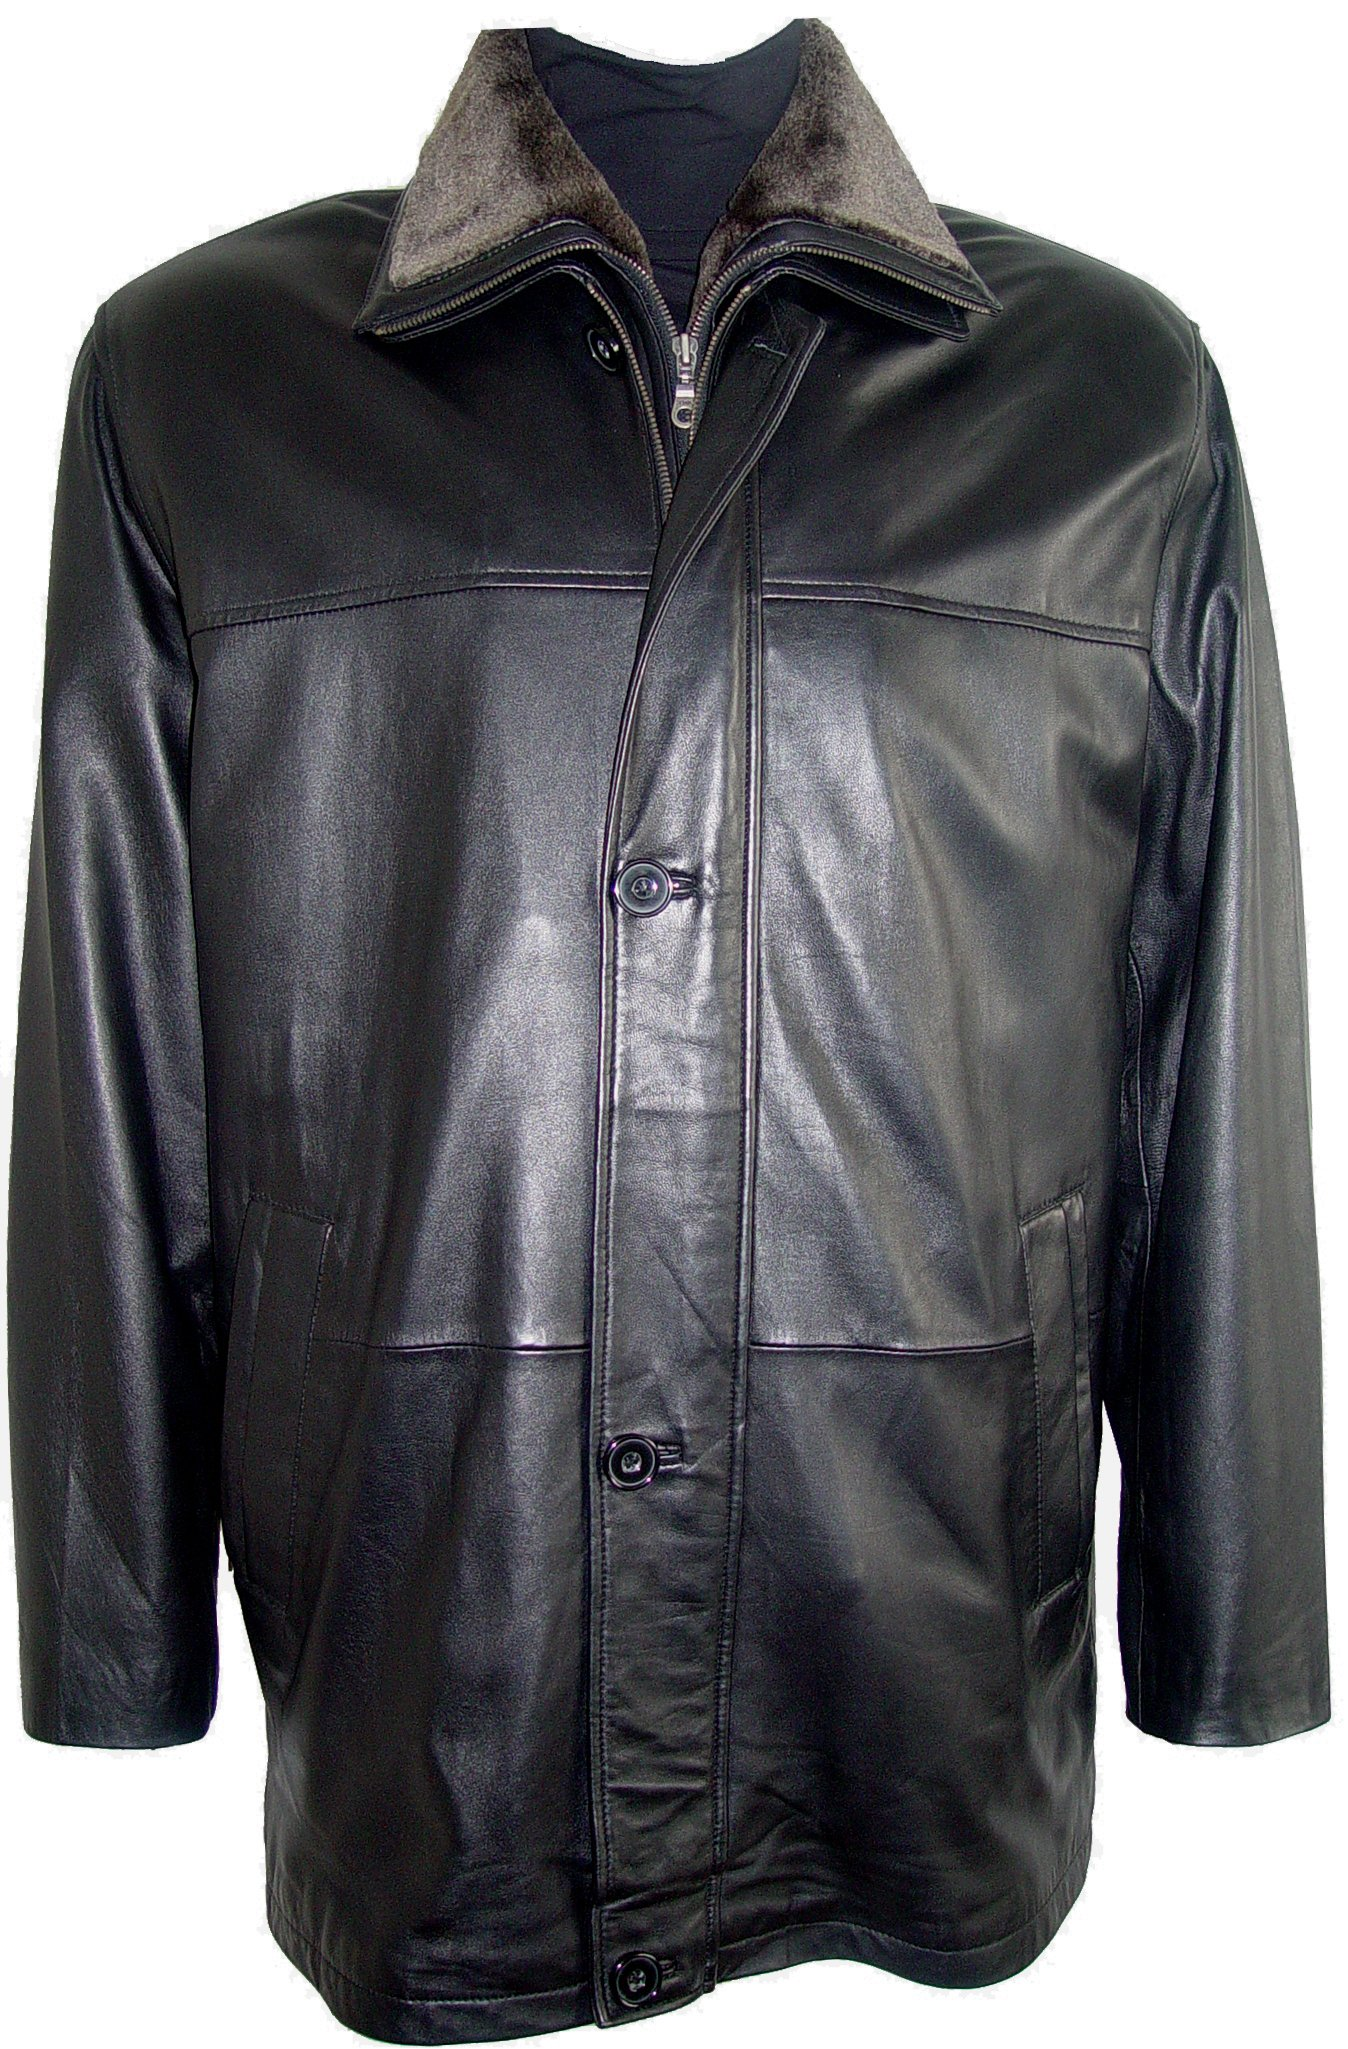 Johnny 2001 Big Man Leather Jacket Business Clothing Coat Tall and All Size